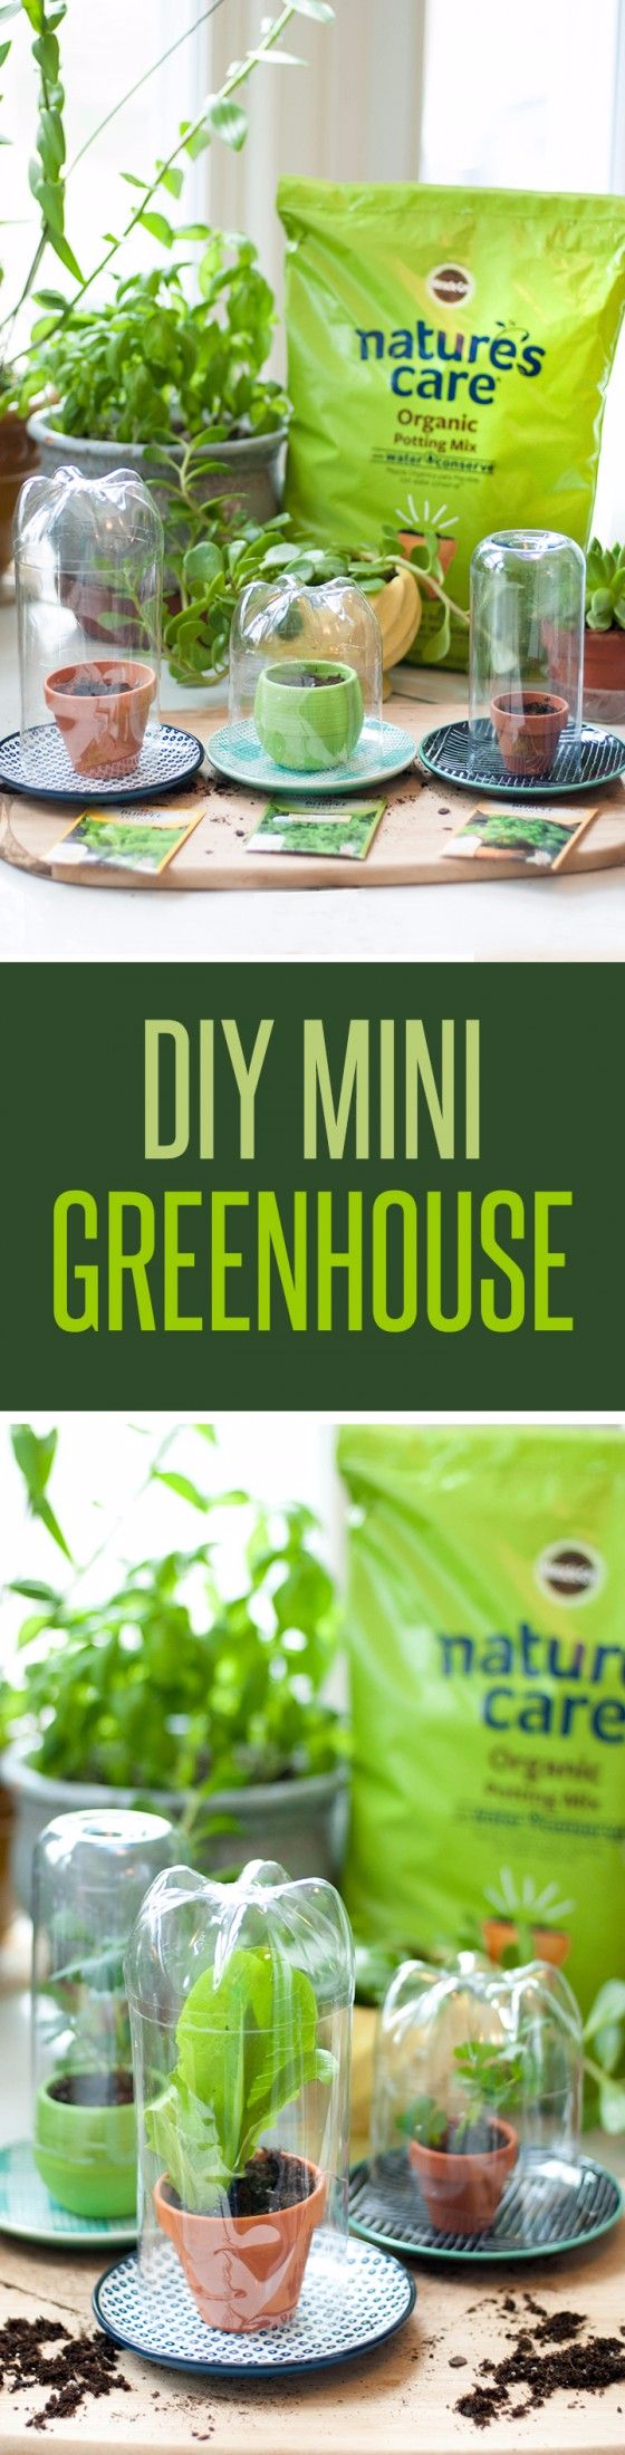 DIY Spring Gardening Projects - DIY Mini Greenhouses - Cool and Easy Planting Tips for Spring Garden - Step by Step Tutorials for Growing Seeds, Plants, Vegetables and Flowers in You Yard - DIY Project Ideas for Women and Men - Creative and Quick Backyard Ideas For Summer http://diyjoy.com/diy-spring-gardening